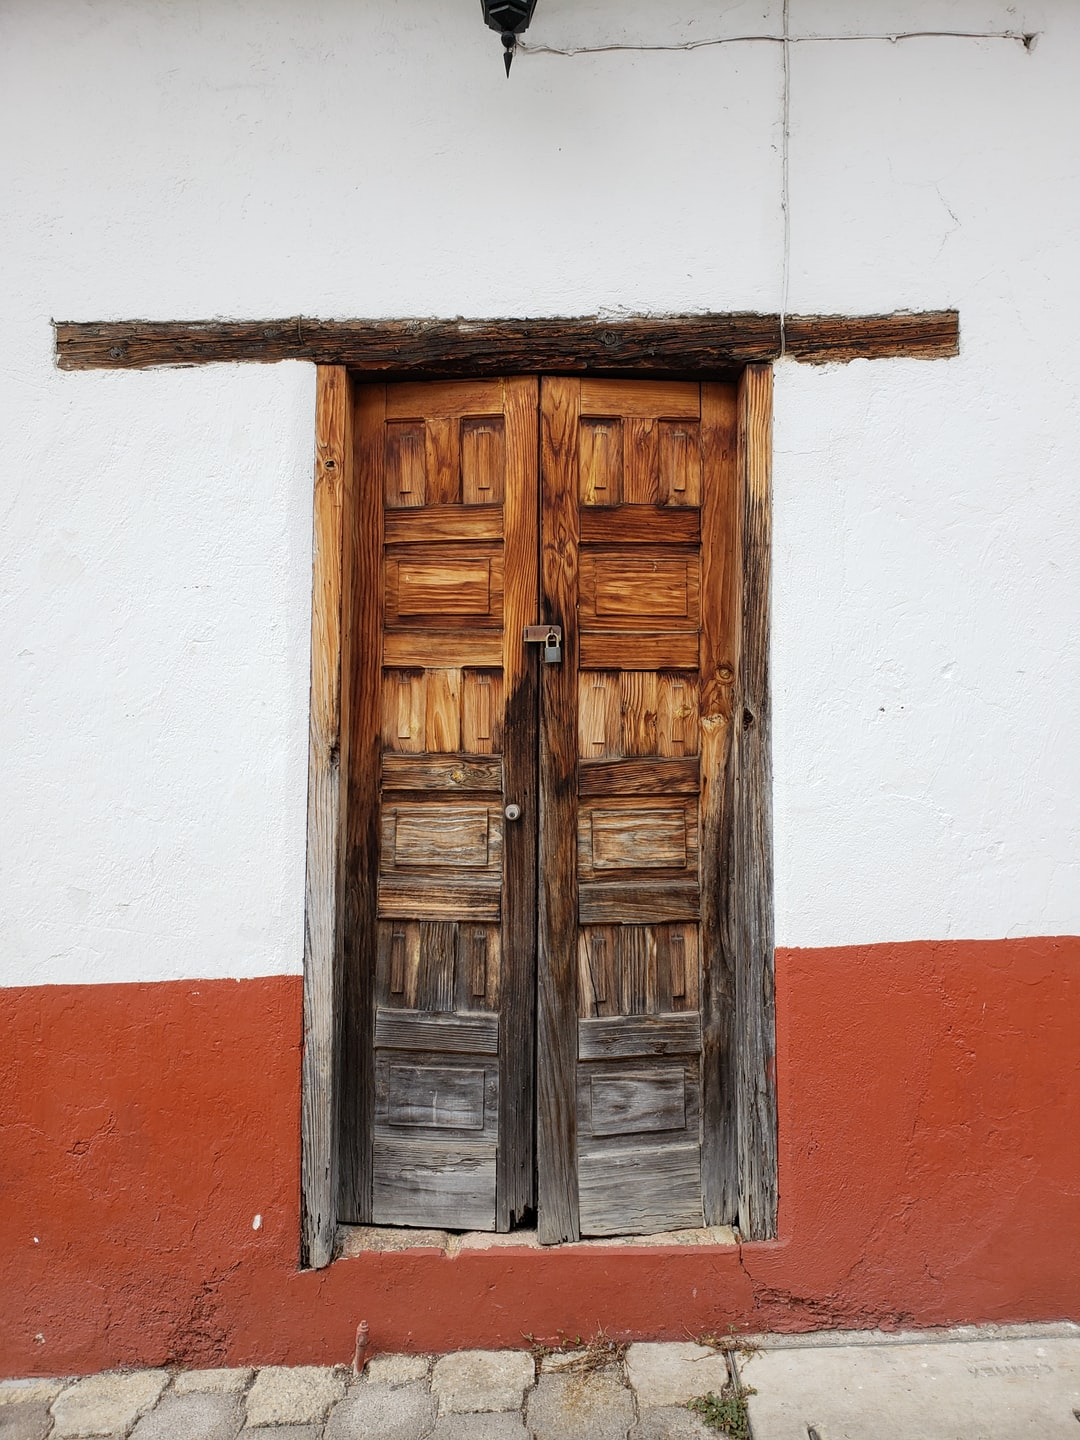 Visiting magical towns like Valle de Bravo, Mexico, One of the main attractions is just to walk down the narrow and very romantic stoned streets, where you may find colorful and interesting angles to photo every two steps.  I just loved this door so rugged, so full of texture and at the same time kind of intriguing… maybe welcoming?  Guess we´ll have to wait to know.